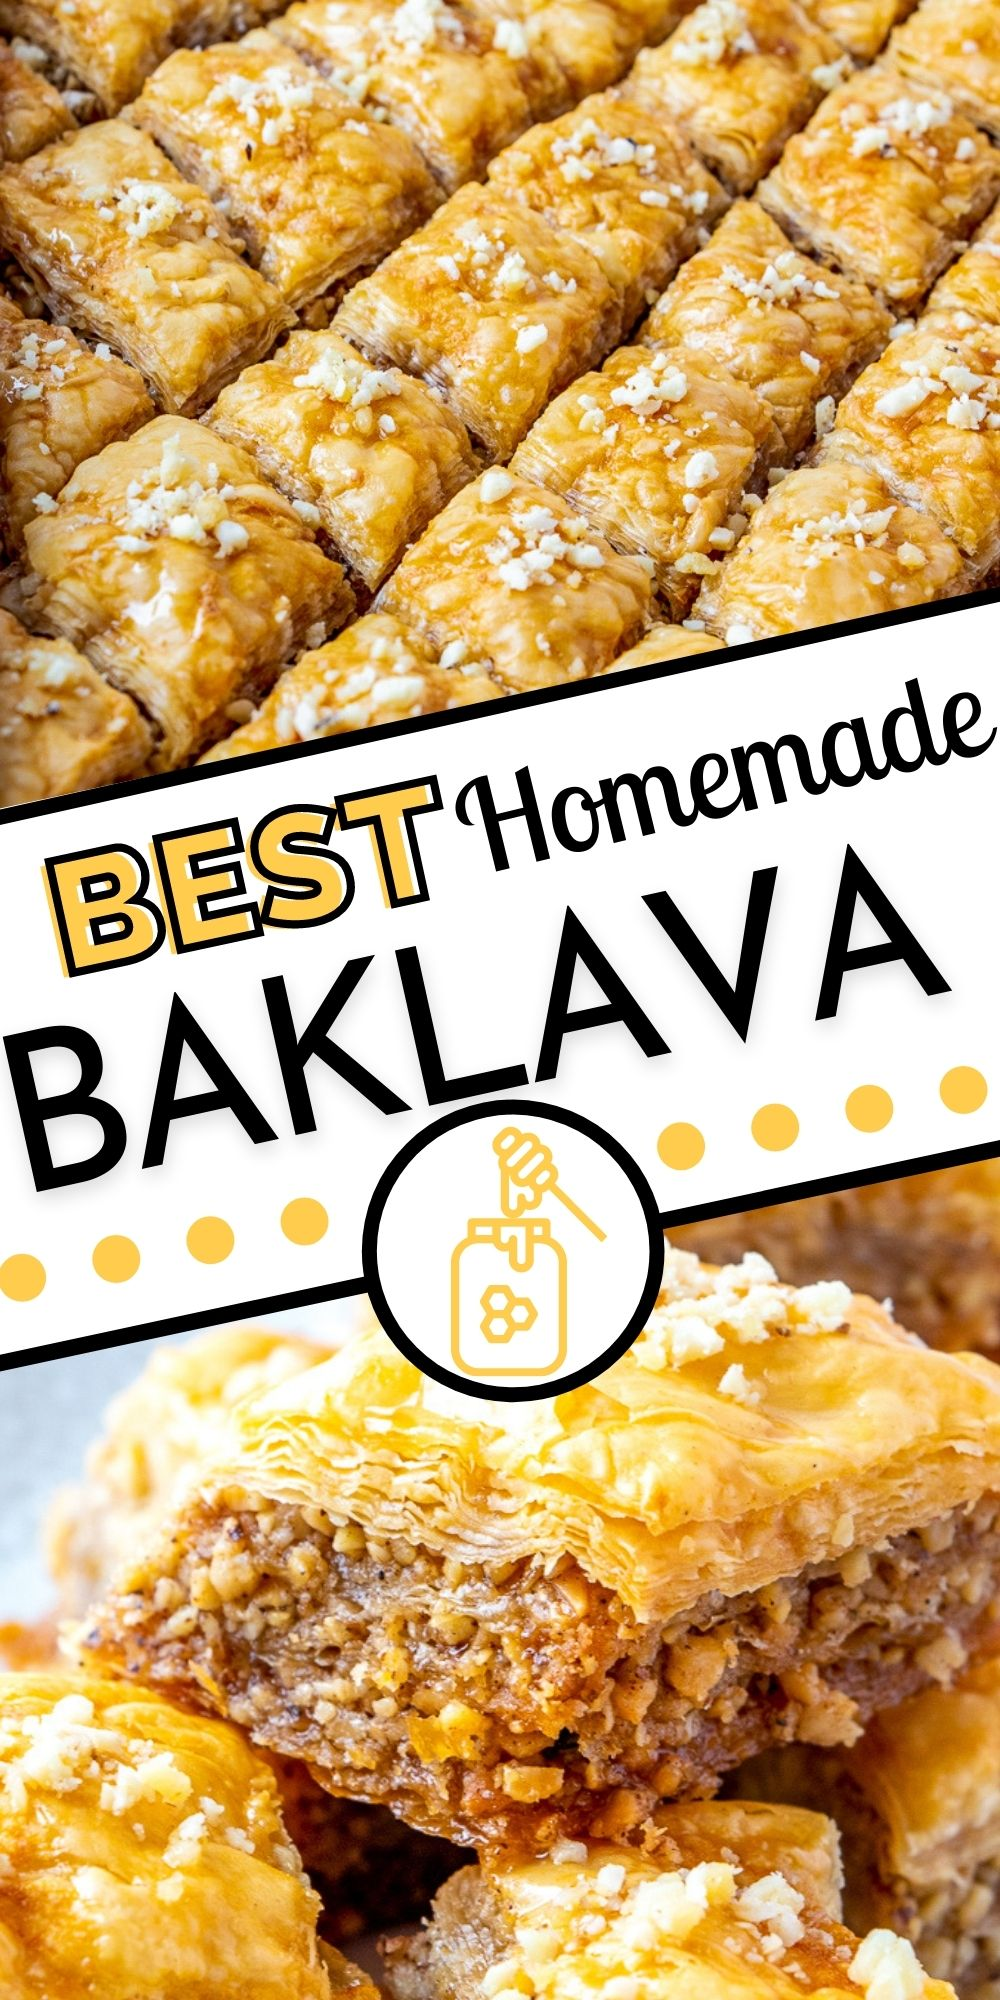 This best Baklava recipe takes time, but it is SO worth it! It is perfect for family functions, parties, holidays, or gifting! via @foodfolksandfun